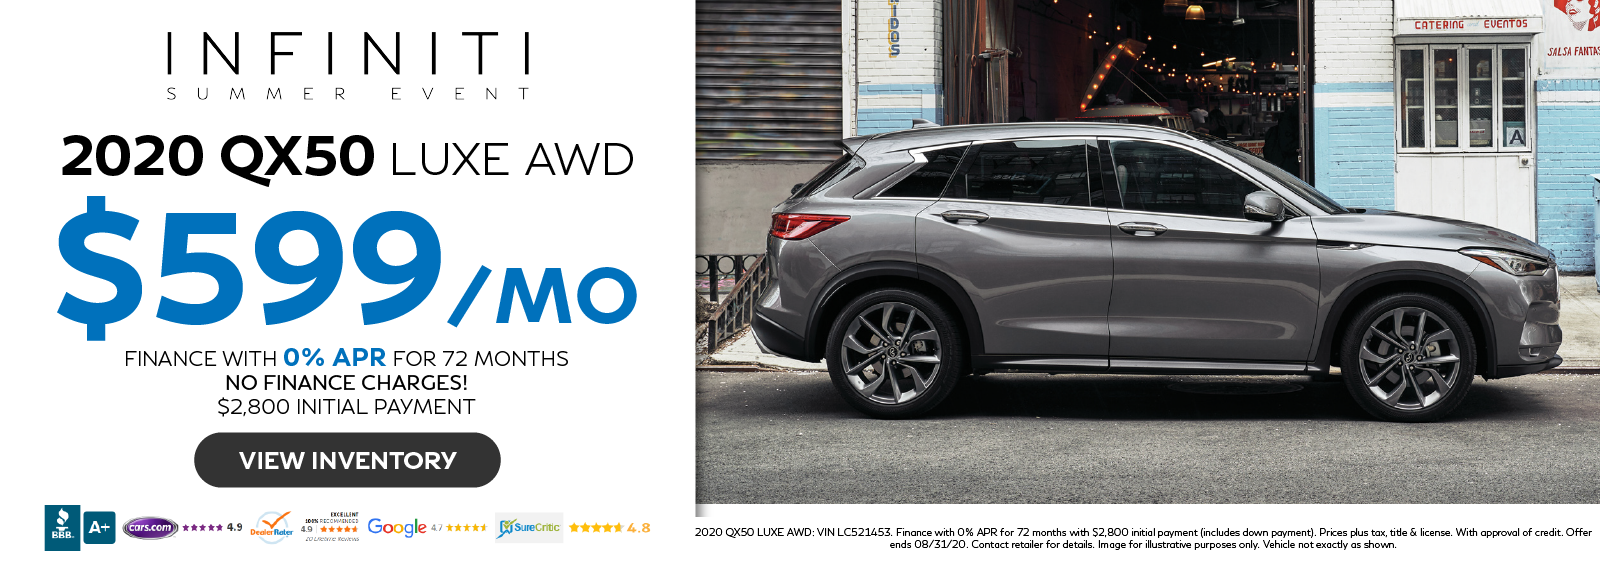 Finance the 2020 QX50 LUXE AWD for $599 per month with 0% APR for 72 months. Click to view inventory.